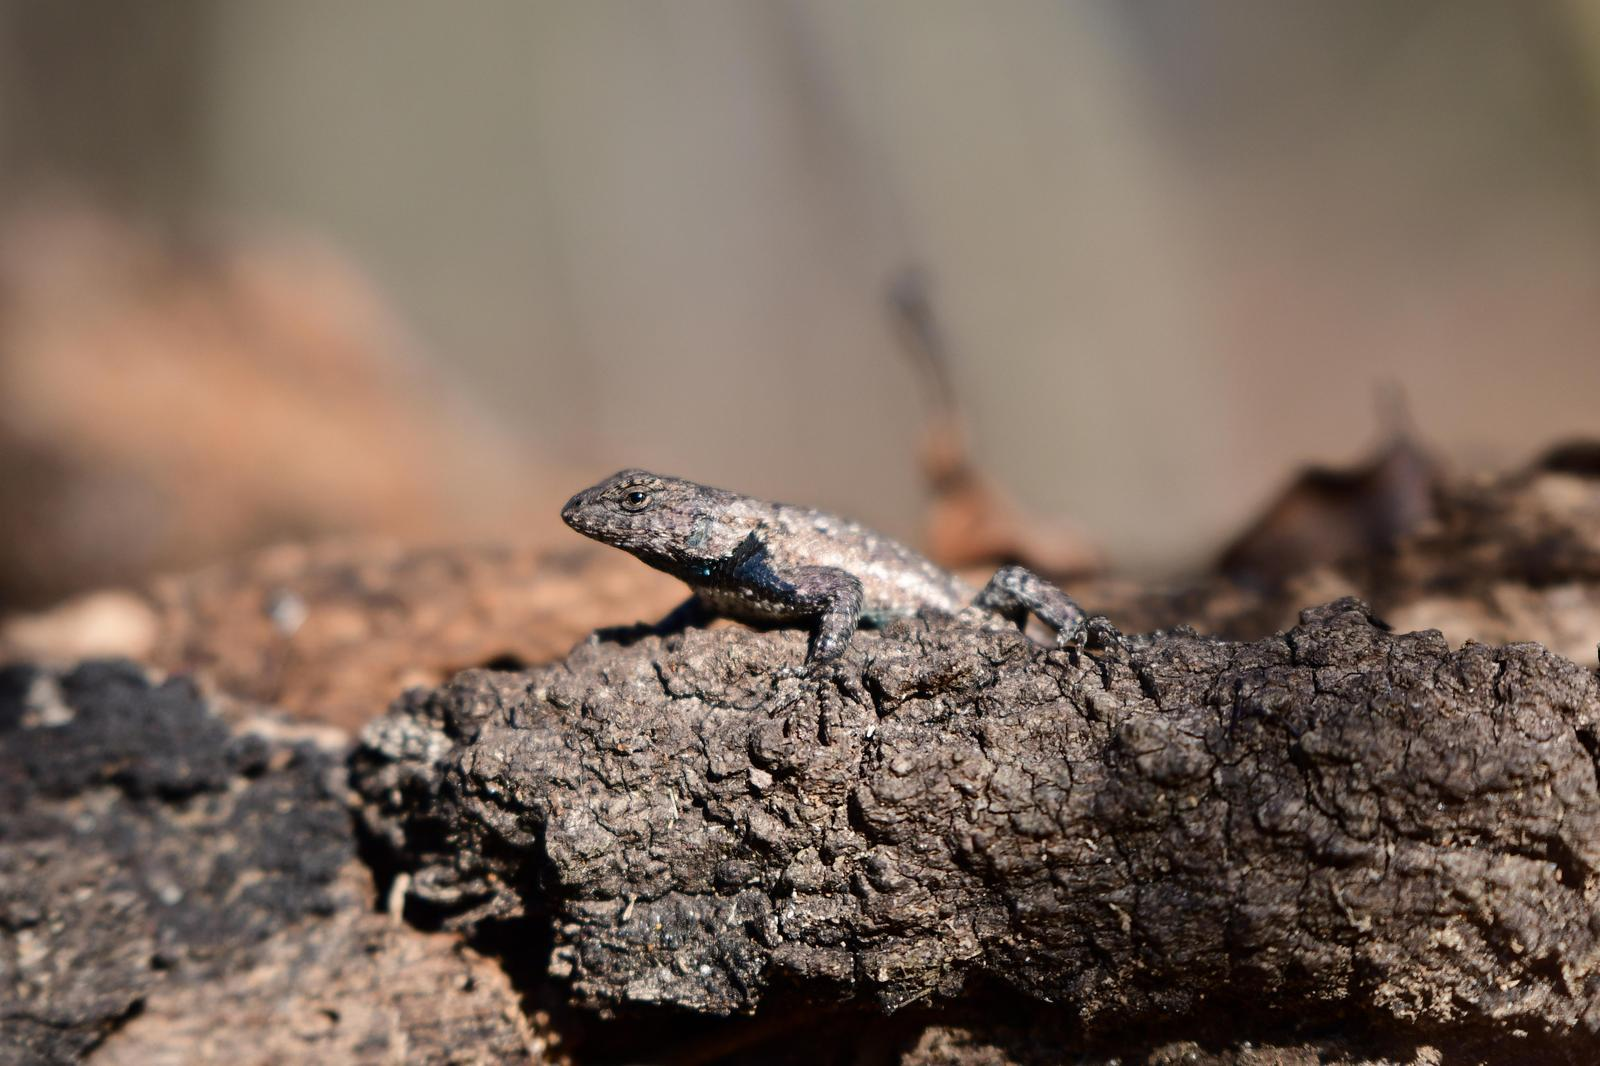 Eastern Fence Lizard Photo by Jacob Zadik